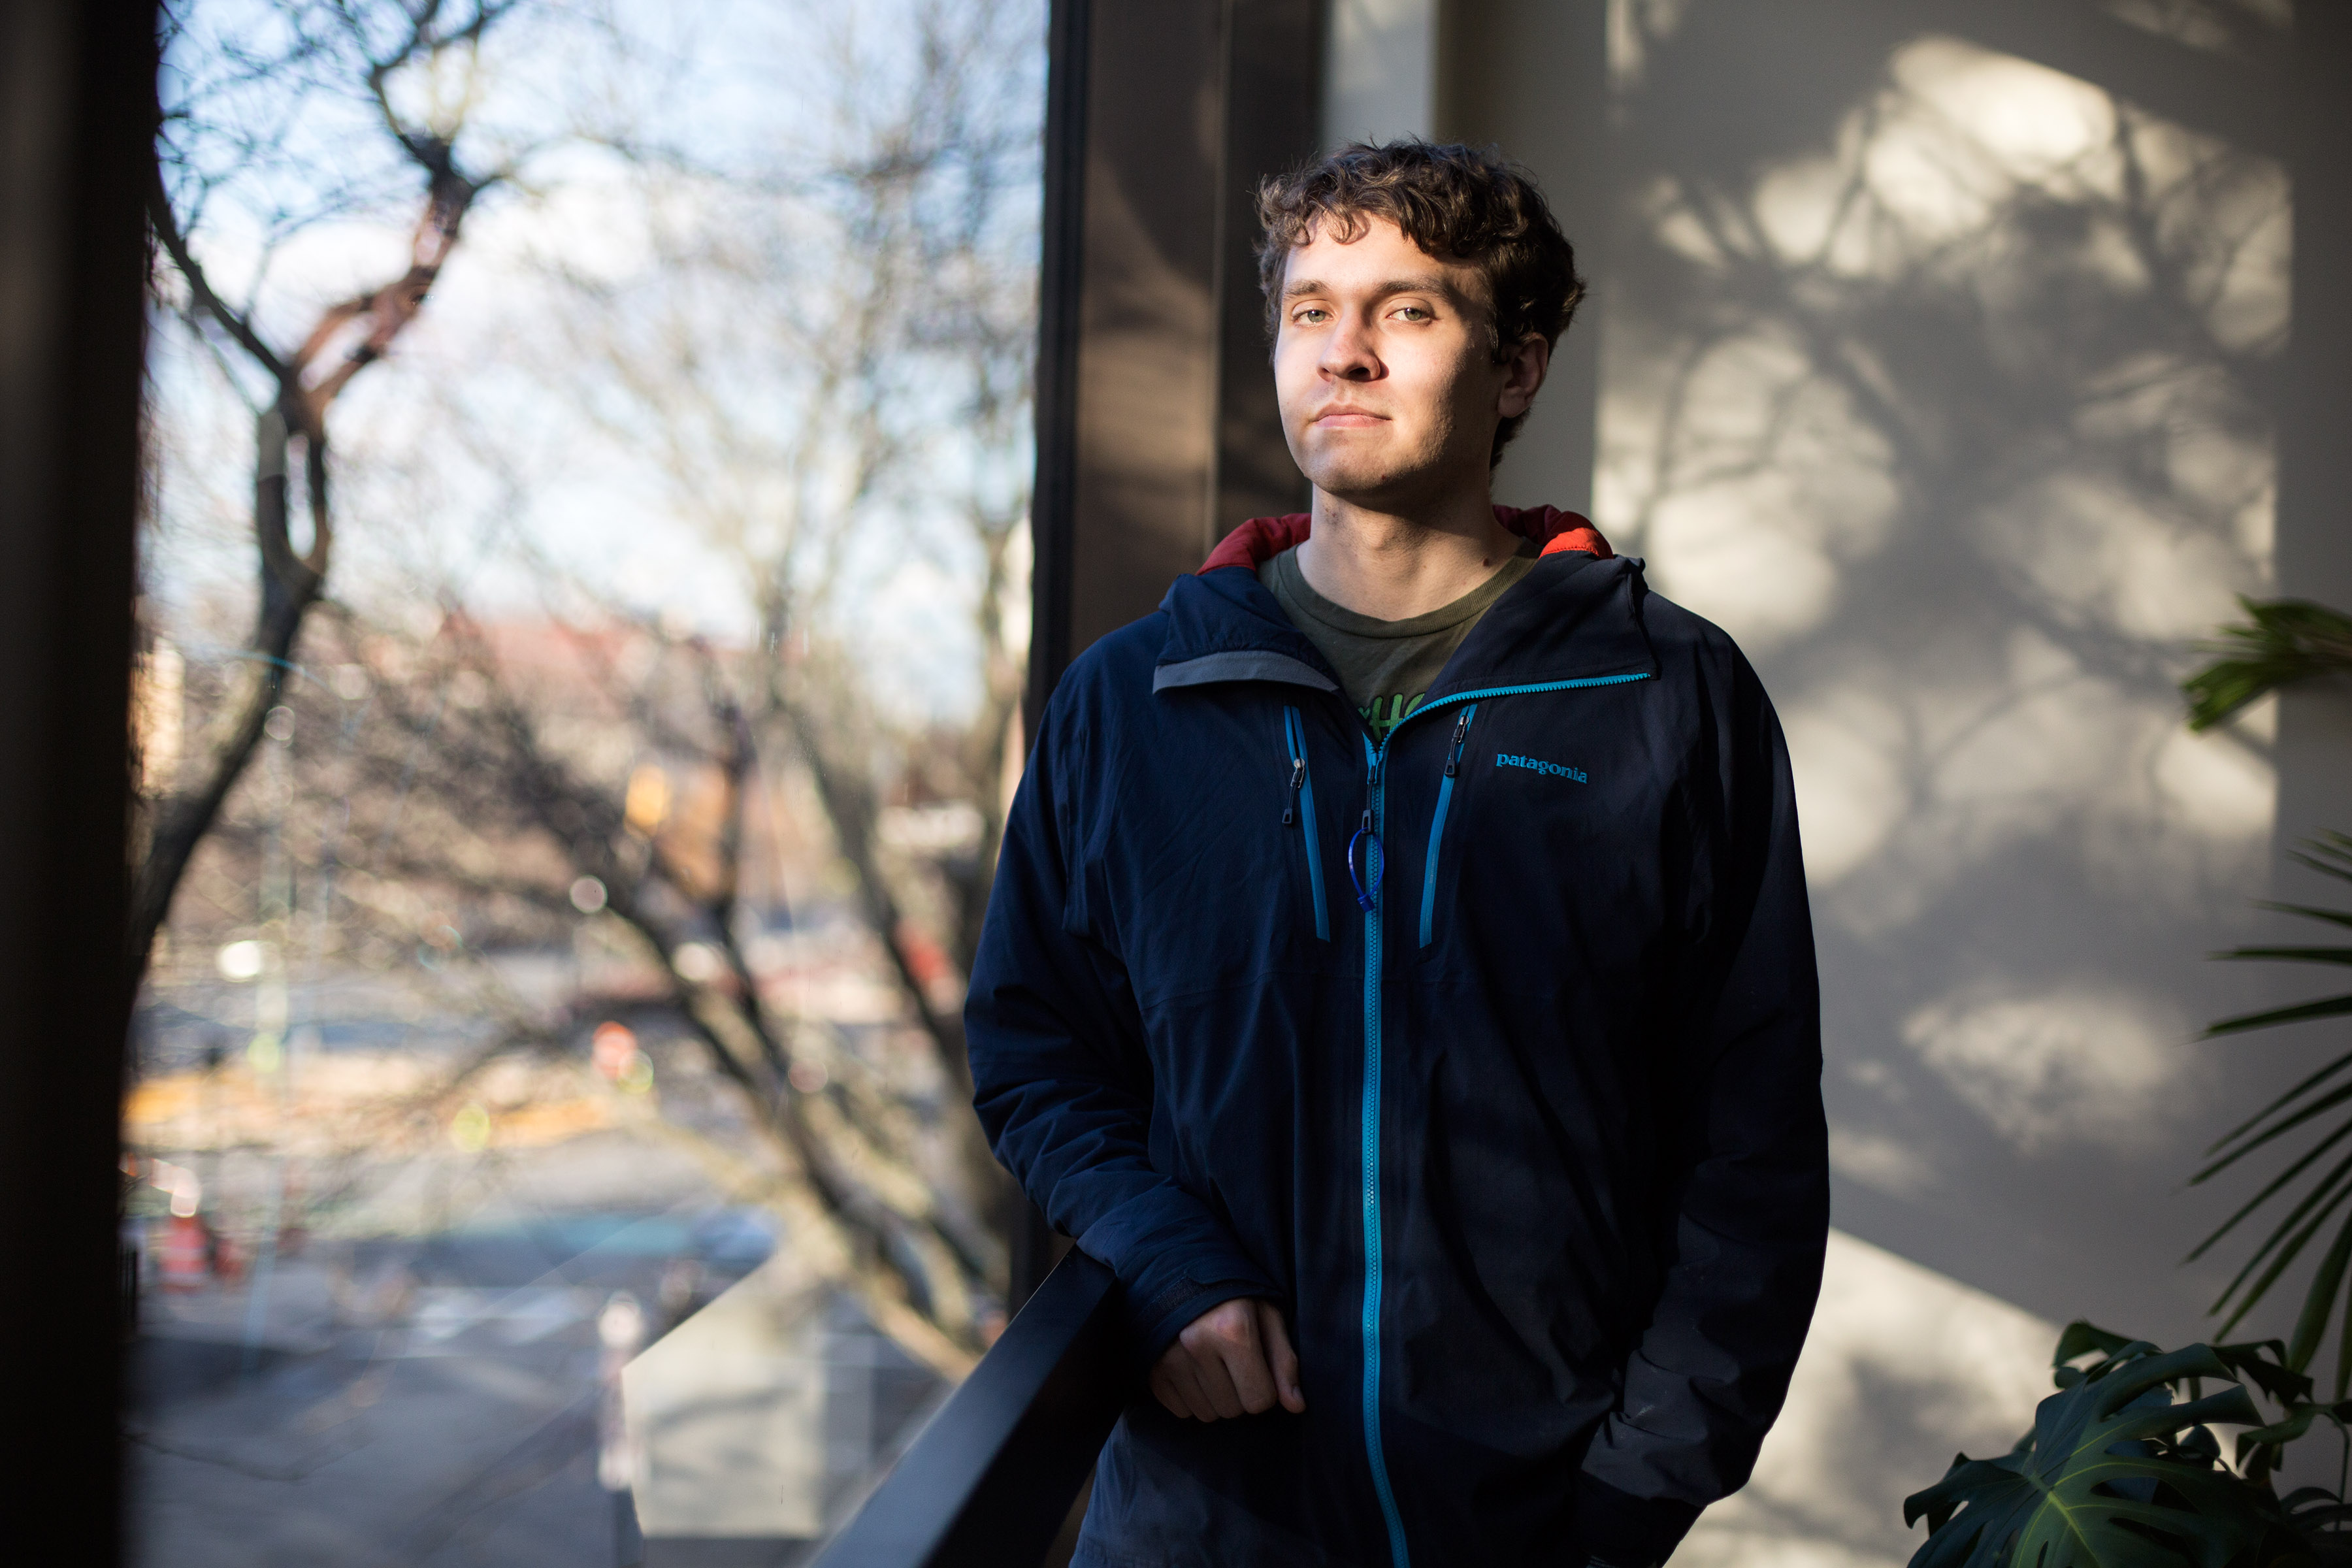 Anxious Students Strain College Mental >> College Students With Mental Health Challenges Often Feel Alone Not